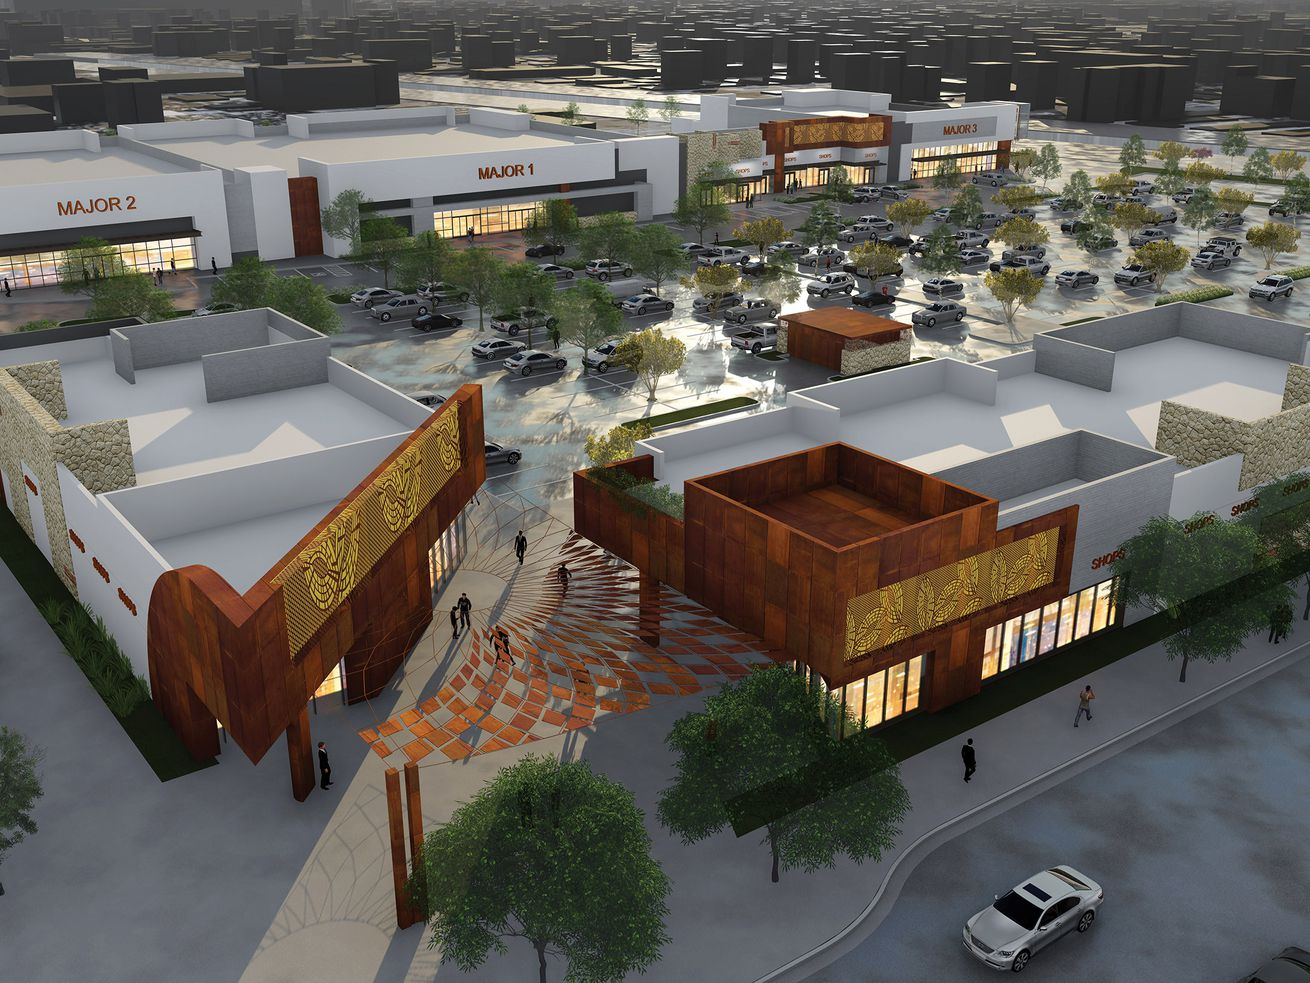 Jordan Downs Plaza will feature storefronts encircling a central parking lot.